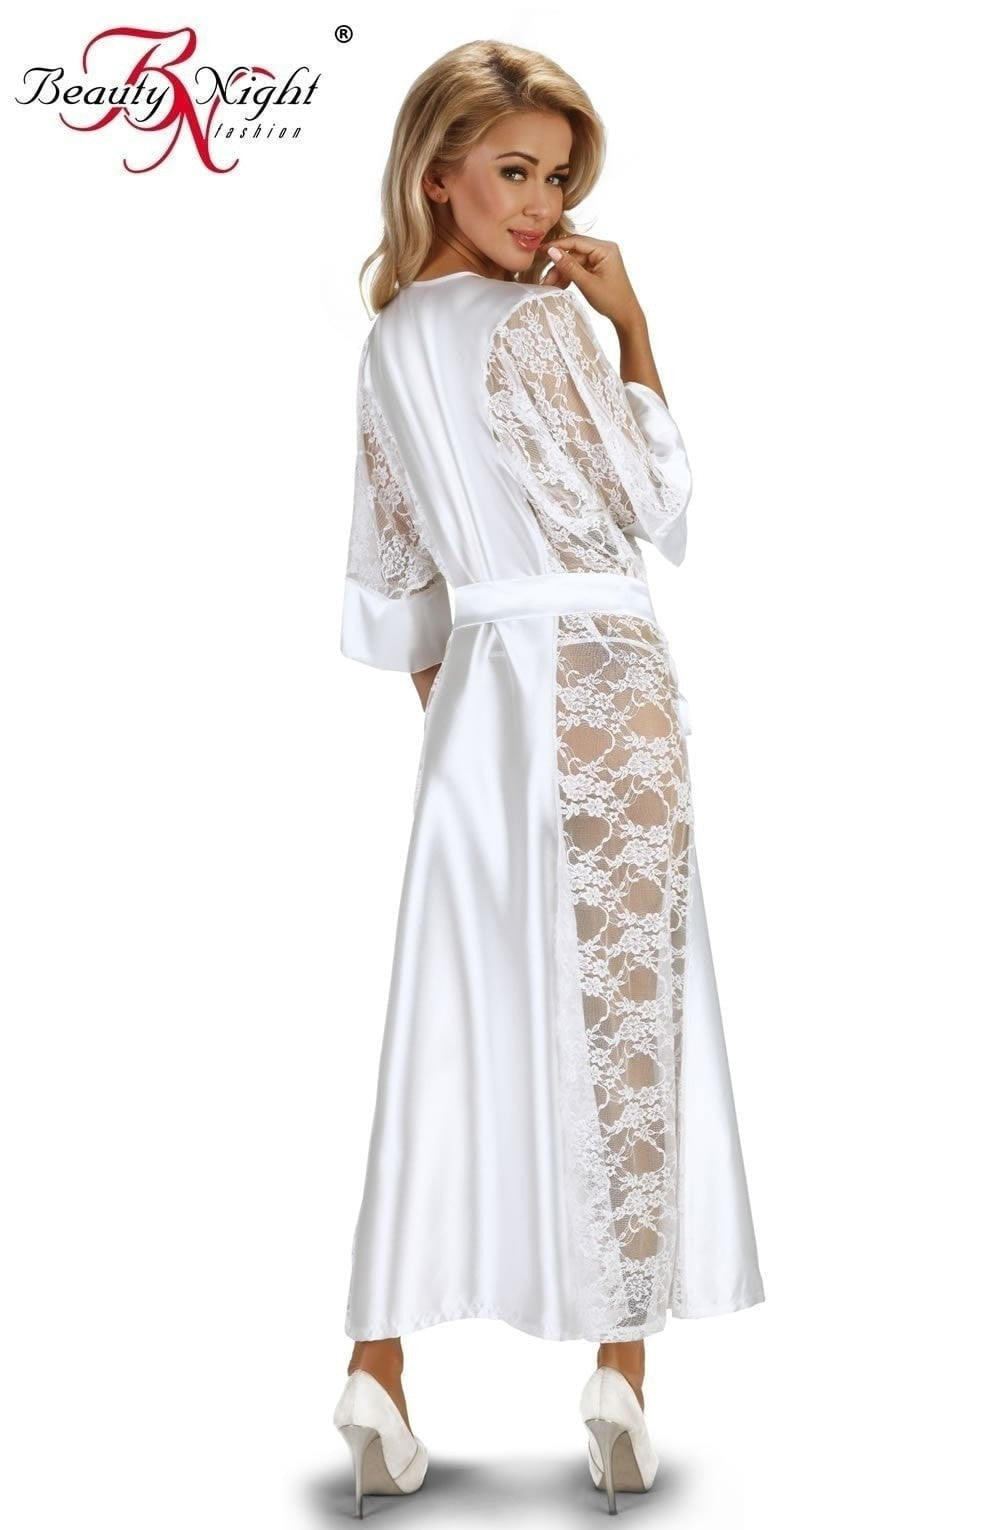 Beauty Night Bouquet Dressing Gown (White) at Charm and Lace Boutique